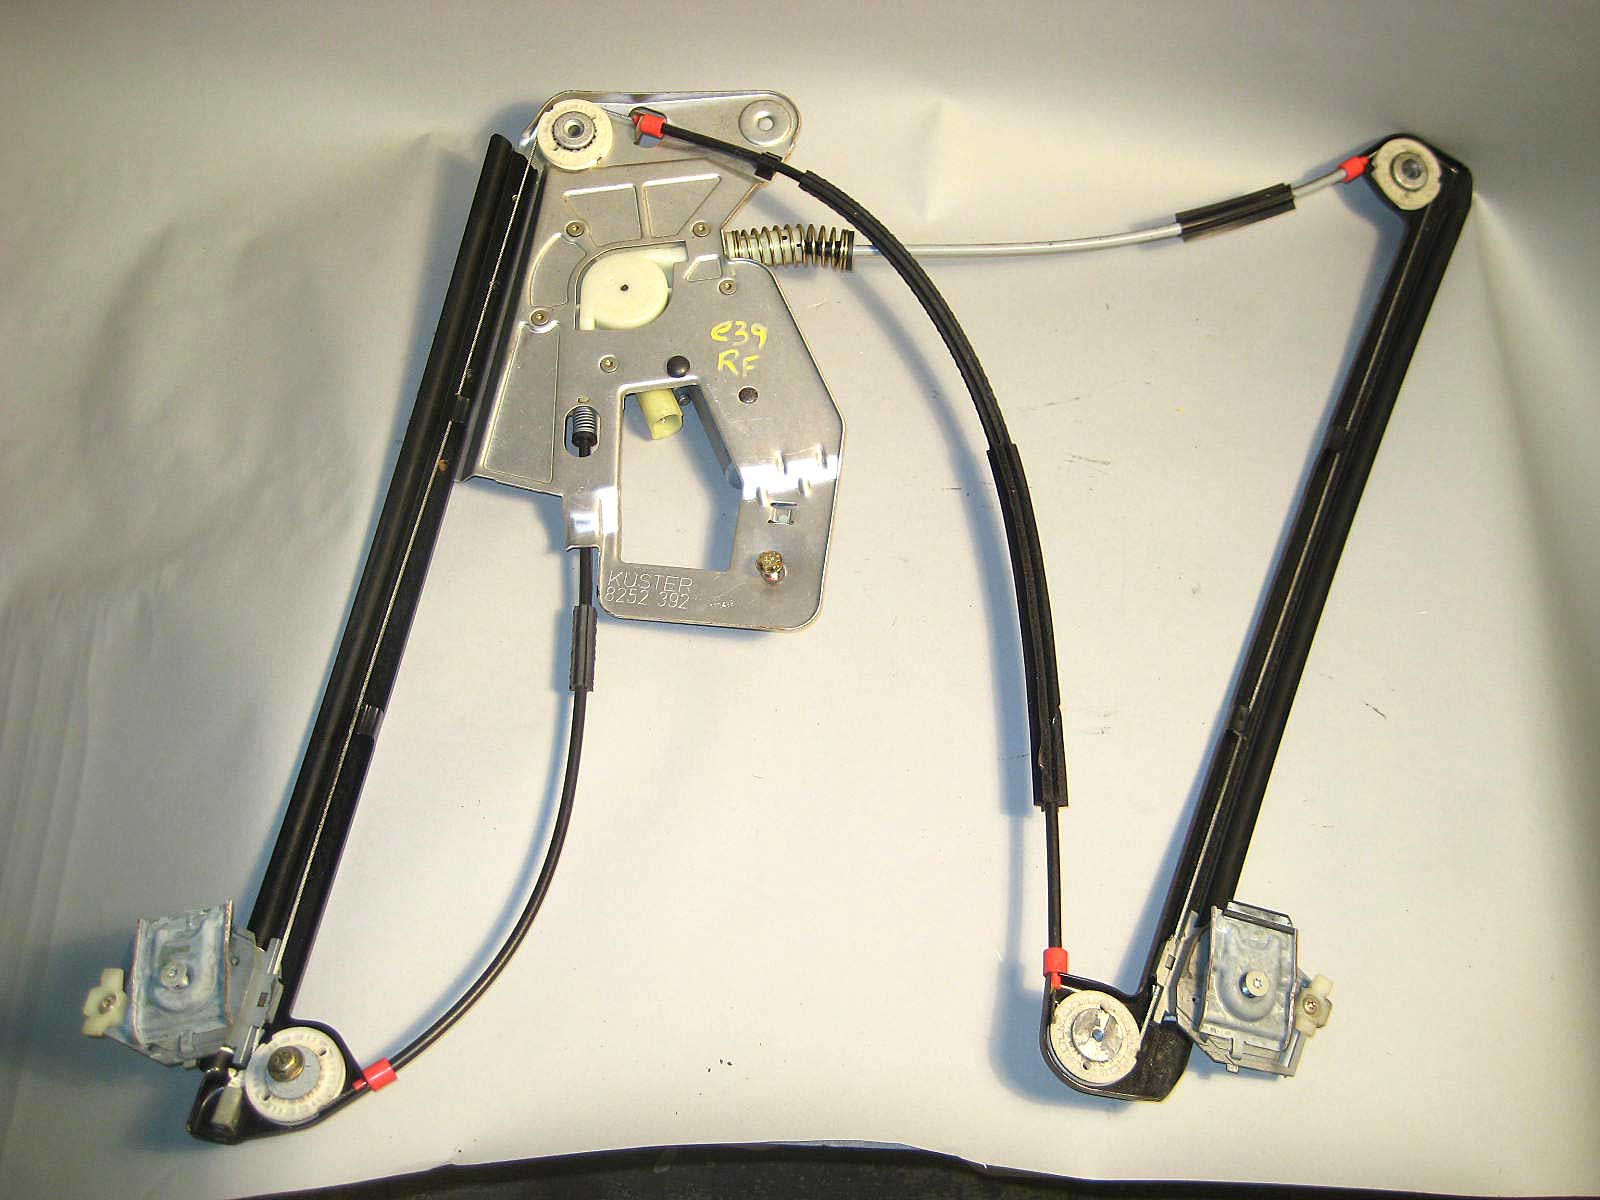 2003 Bmw 530i Window Regulator Of Bmw E39 Right Front Passenger Window Regulator W Motor